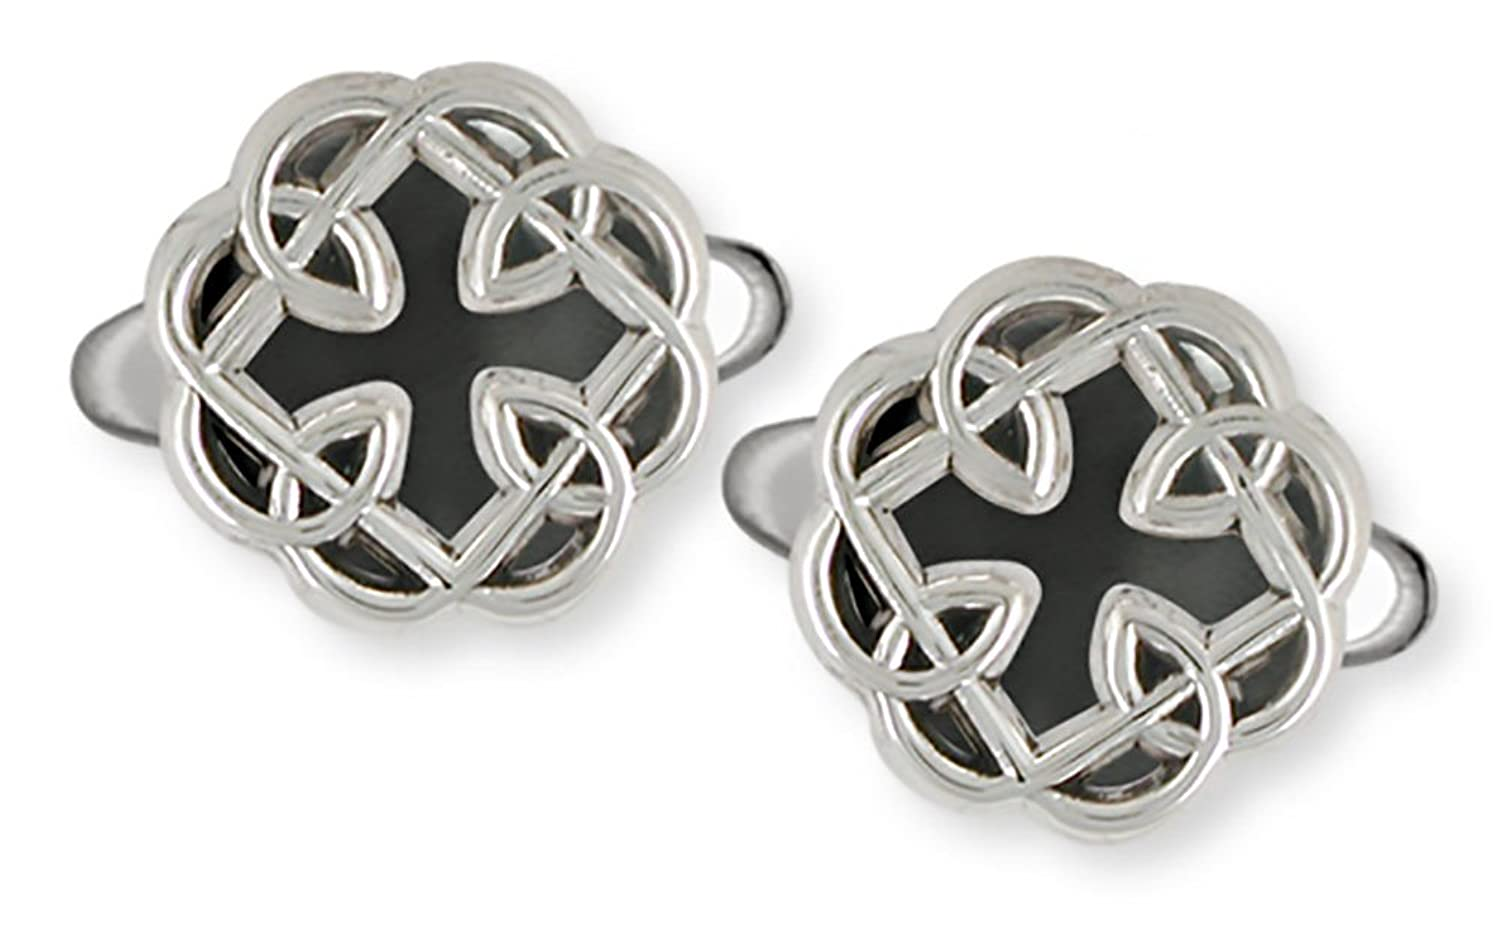 Celtic Knot Father And Daughter Cross Cuff Links Jewelry Handmade Sterling Silver MFC2-CL